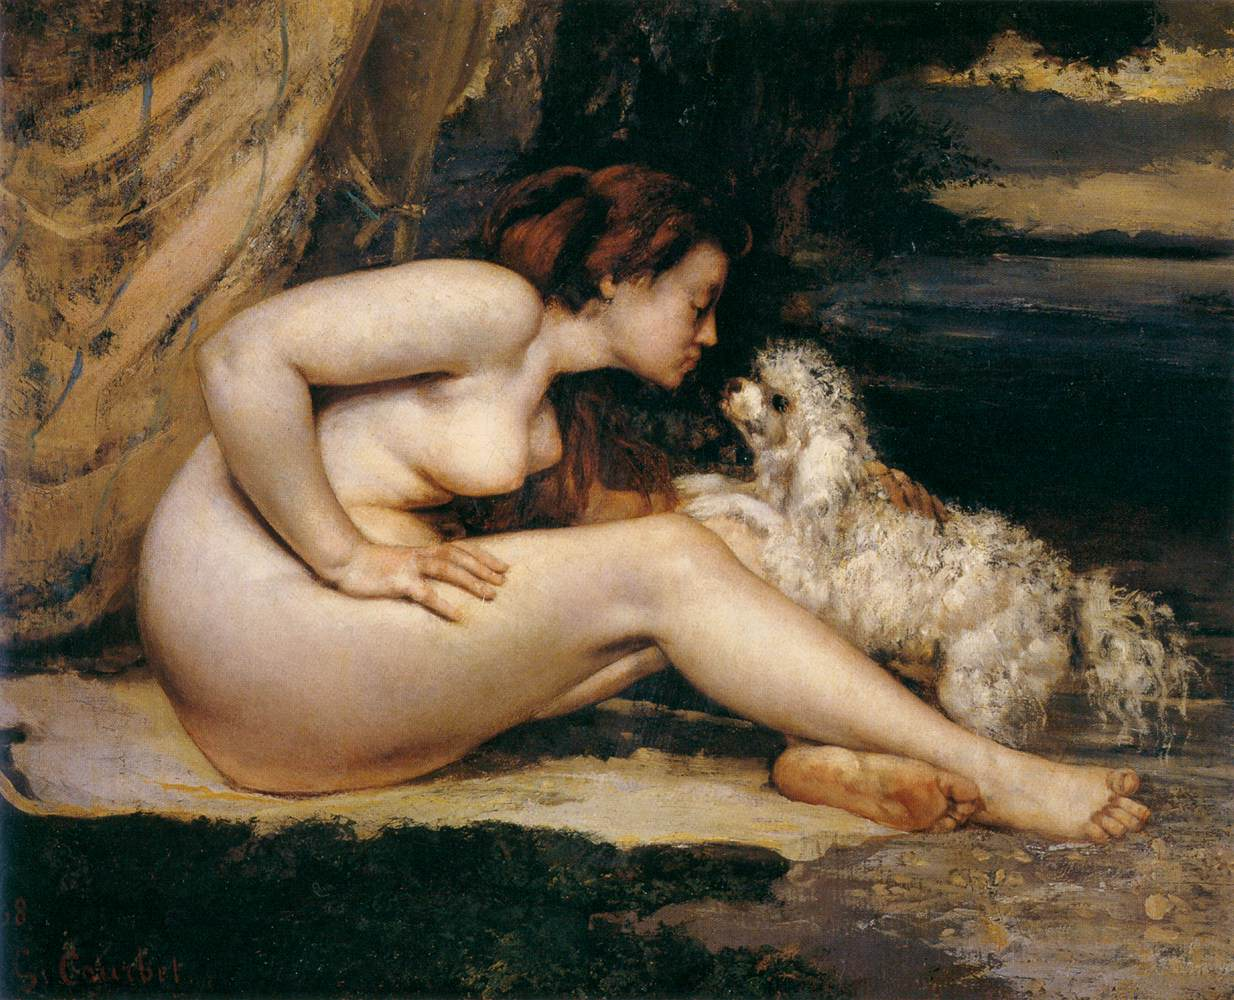 http://3.bp.blogspot.com/-8zxJNMYhRb0/T4H7ykh0dtI/AAAAAAAAP3o/iEBDYGdDsz4/s1600/Nude+Woman+with+Dog+-+Oil+Painting+by+Gustave+Courbet+1868.jpg